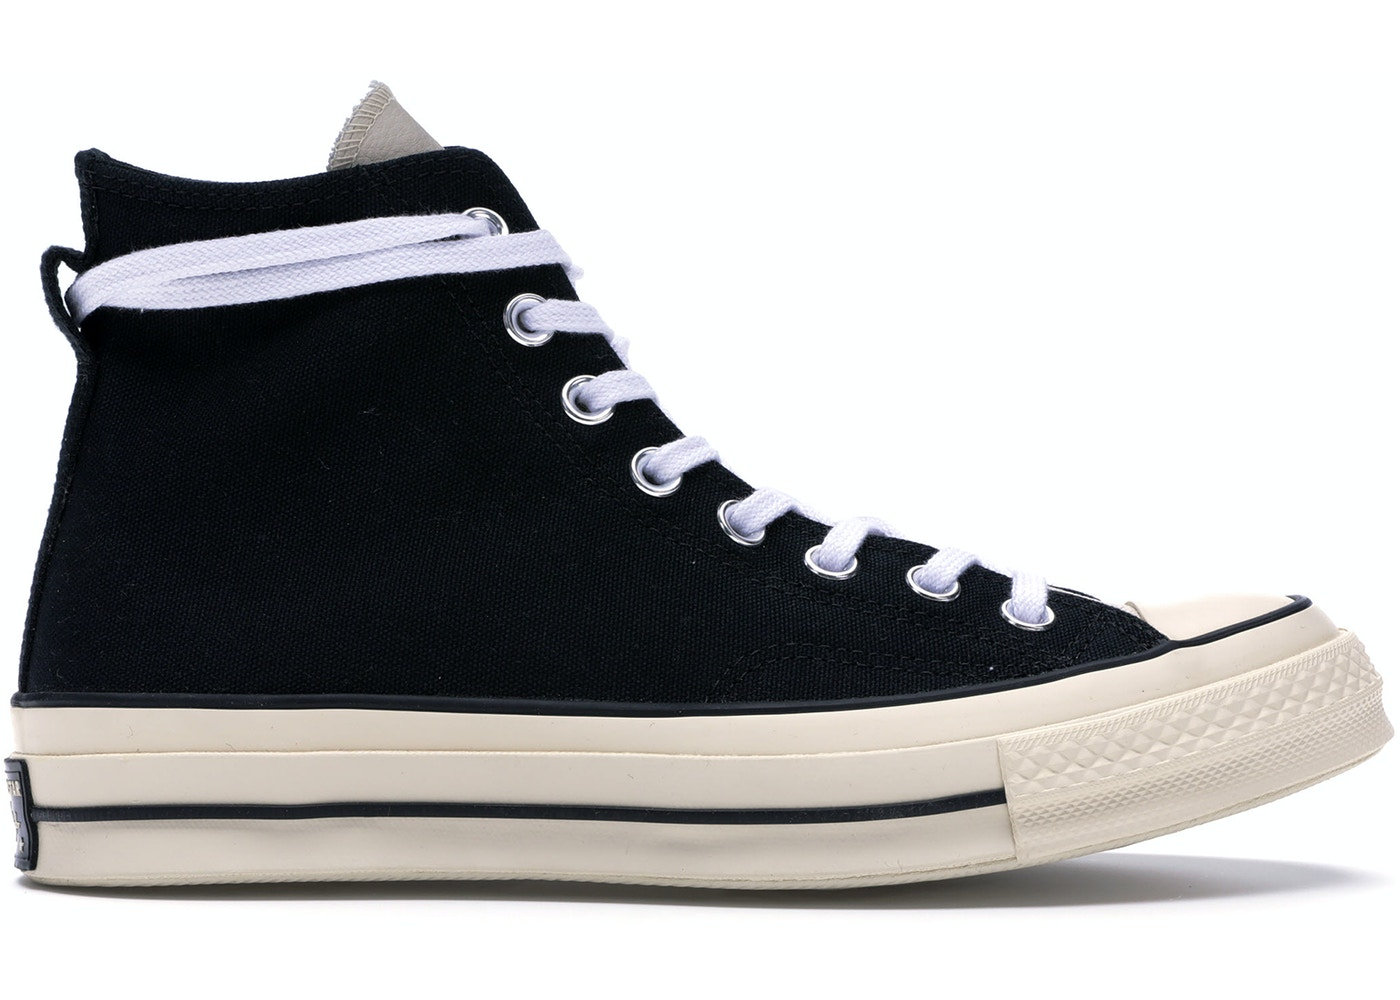 788d04c6f7e Converse Chuck Taylor All-Star 70s Hi Fear of God Black - 164529C